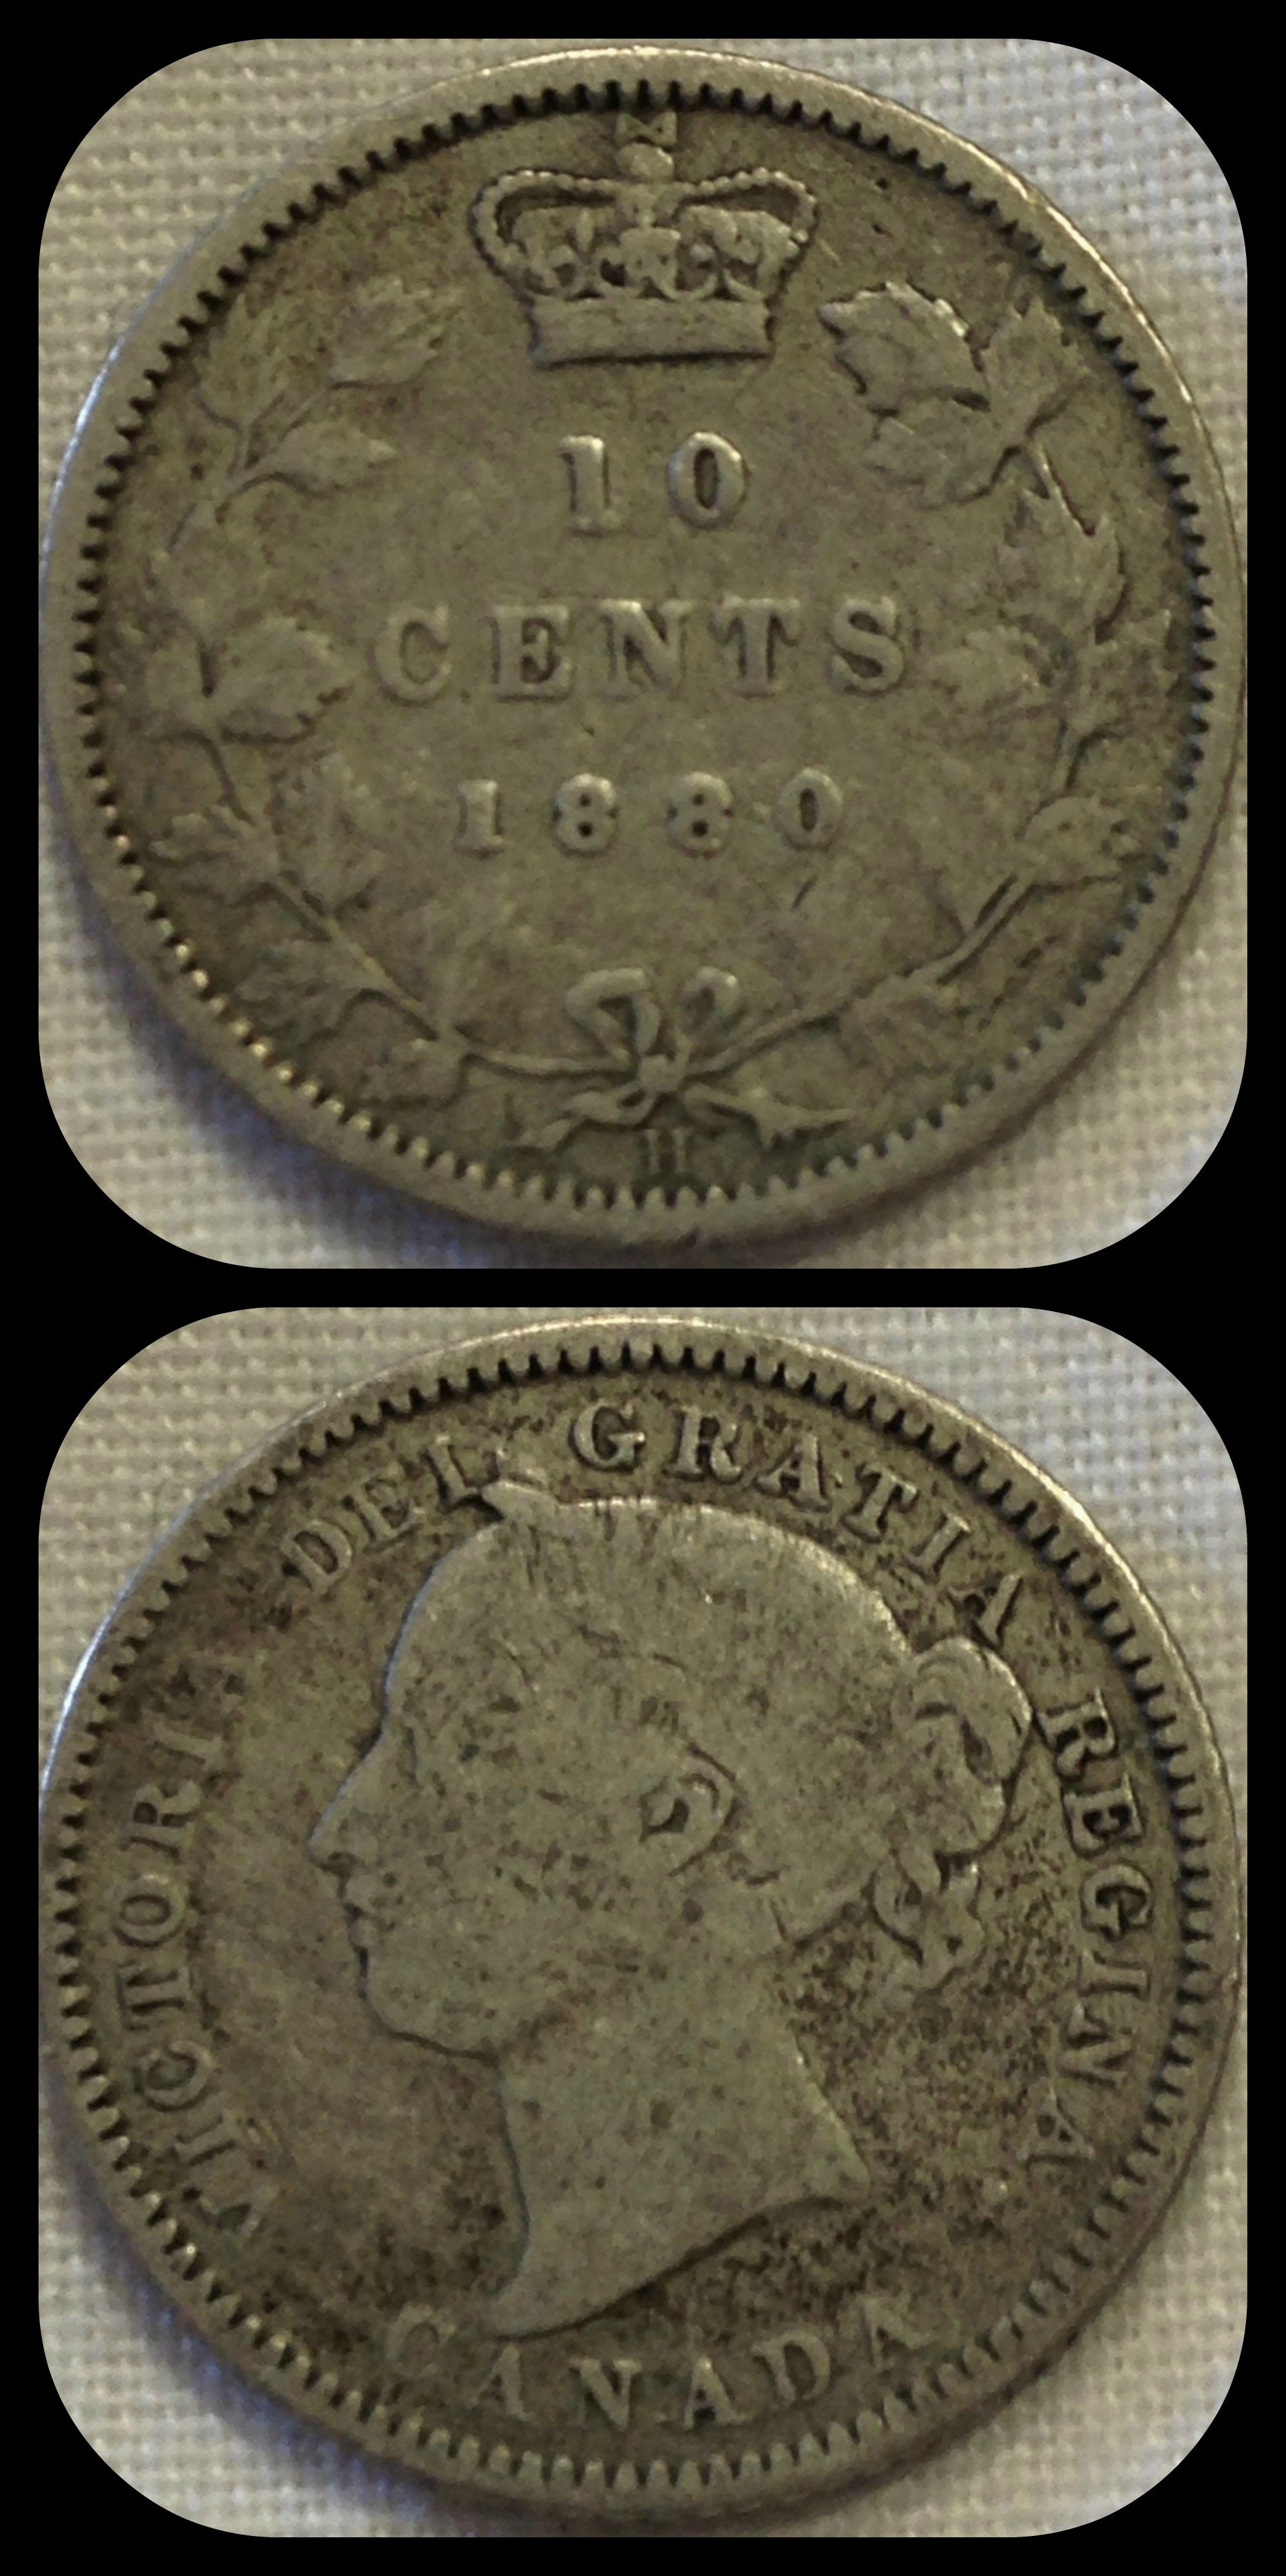 Canada 10 Cents 1880 Condition Very Good For This And More Coins From The Americas Visit Alba Coins Canadiancoins Monnaiecanadiennes